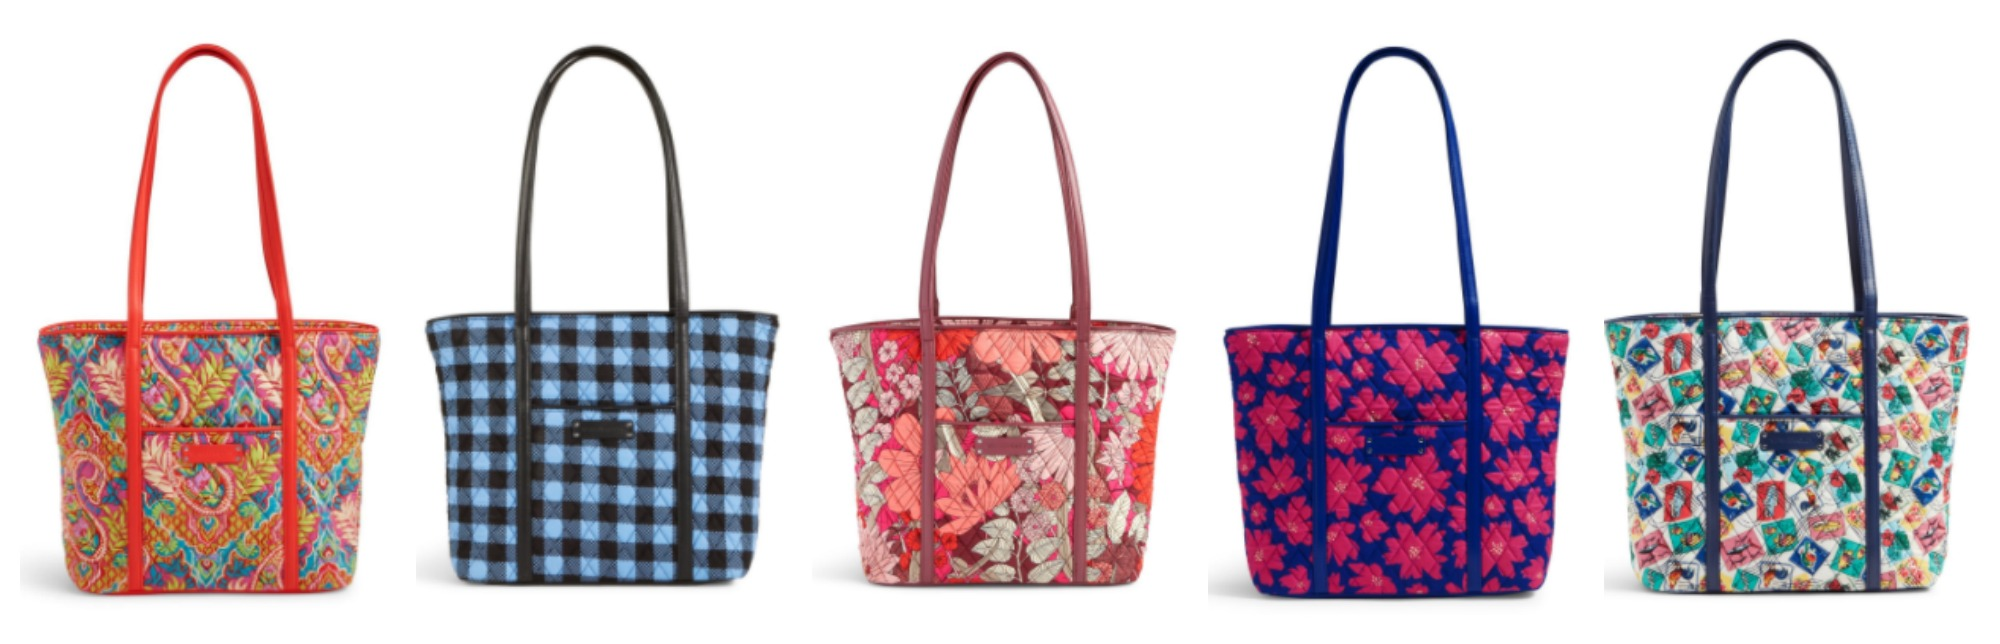 6d592d8b0d You can score this Vera Bradley Small Trimmed Vera Tote Bag for only   29.99! Plus shipping is FREE! Wow!